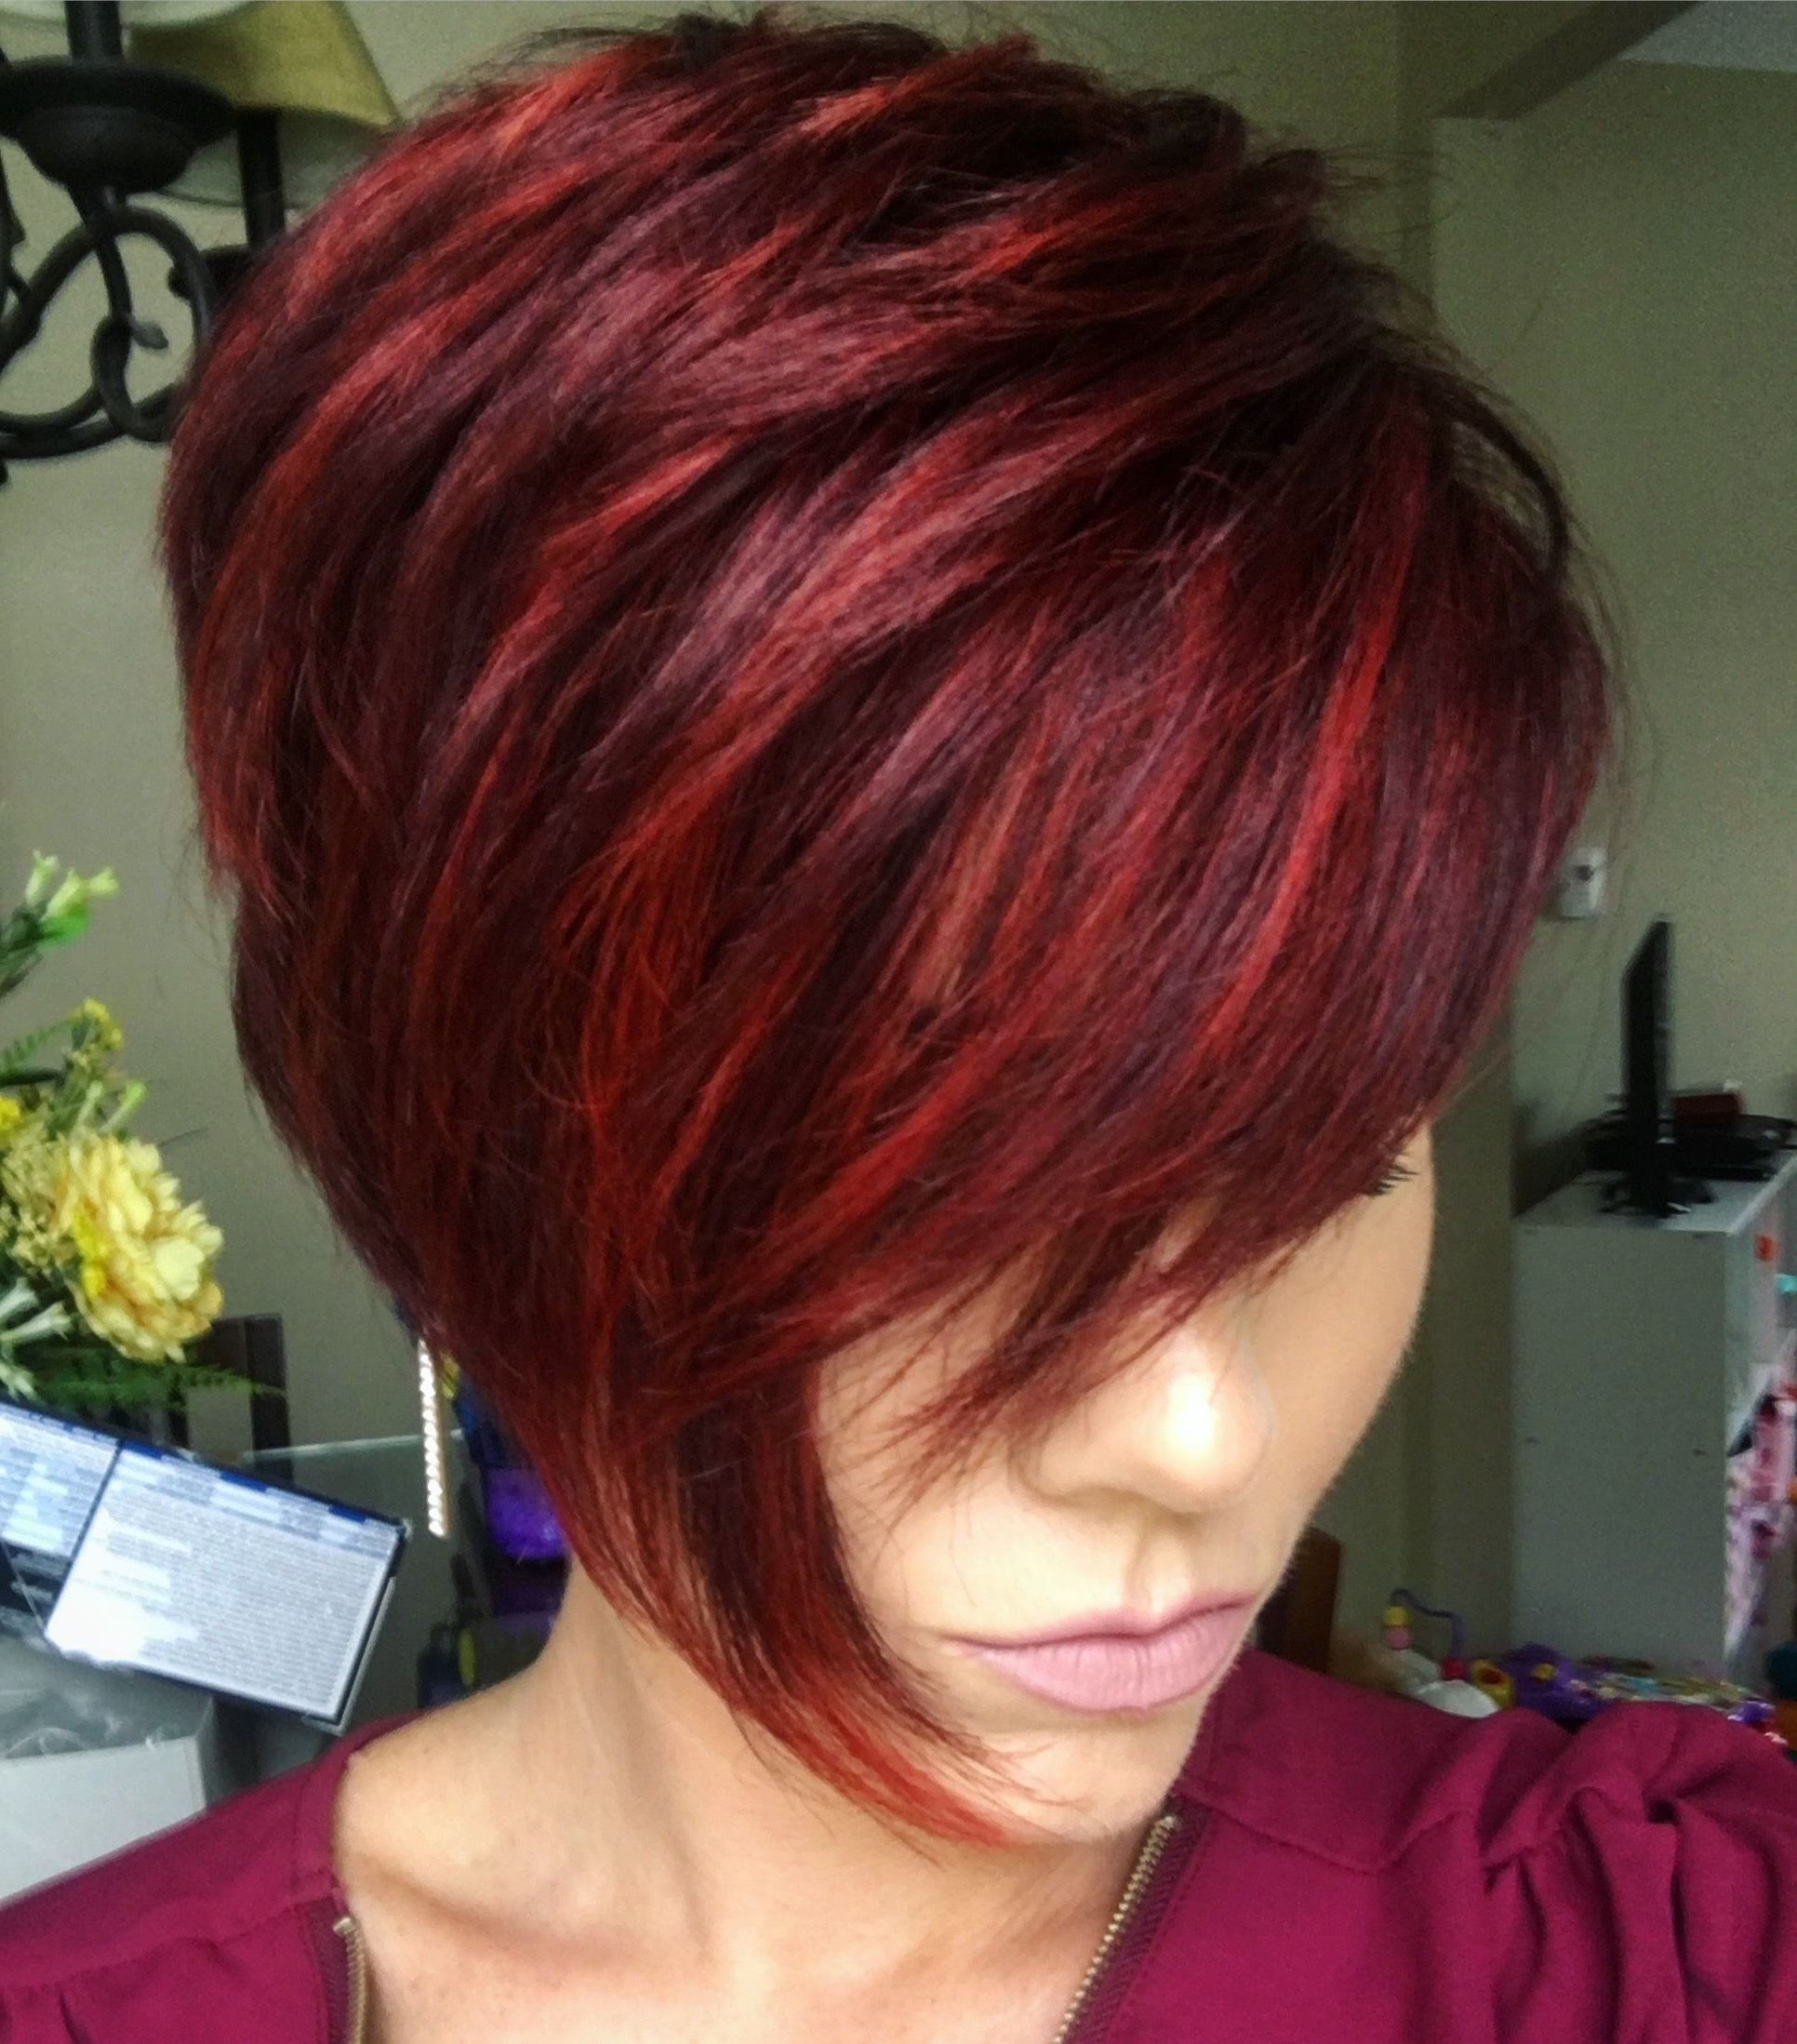 Pin On Hairstyles/inspiration Inside Most Up To Date Pageboy Maroon Red Pixie Haircuts (Gallery 3 of 20)